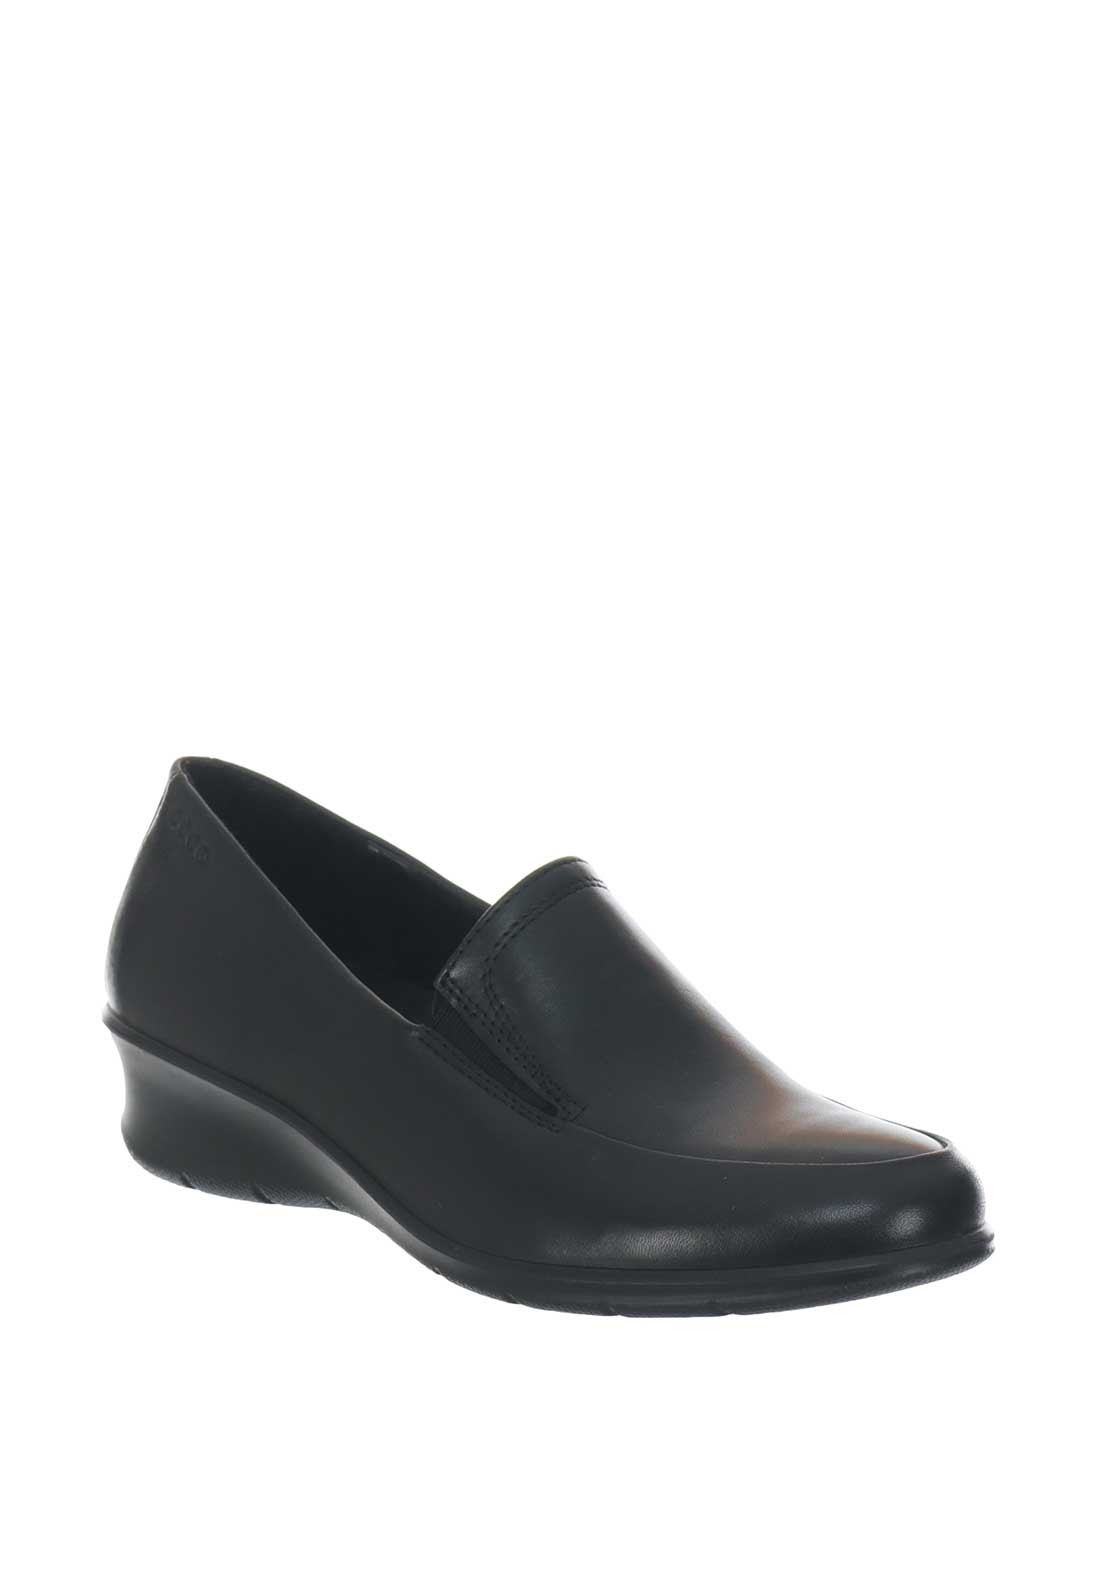 727db60d31 Ecco Womens Leather Low Wedge Shoe, Black